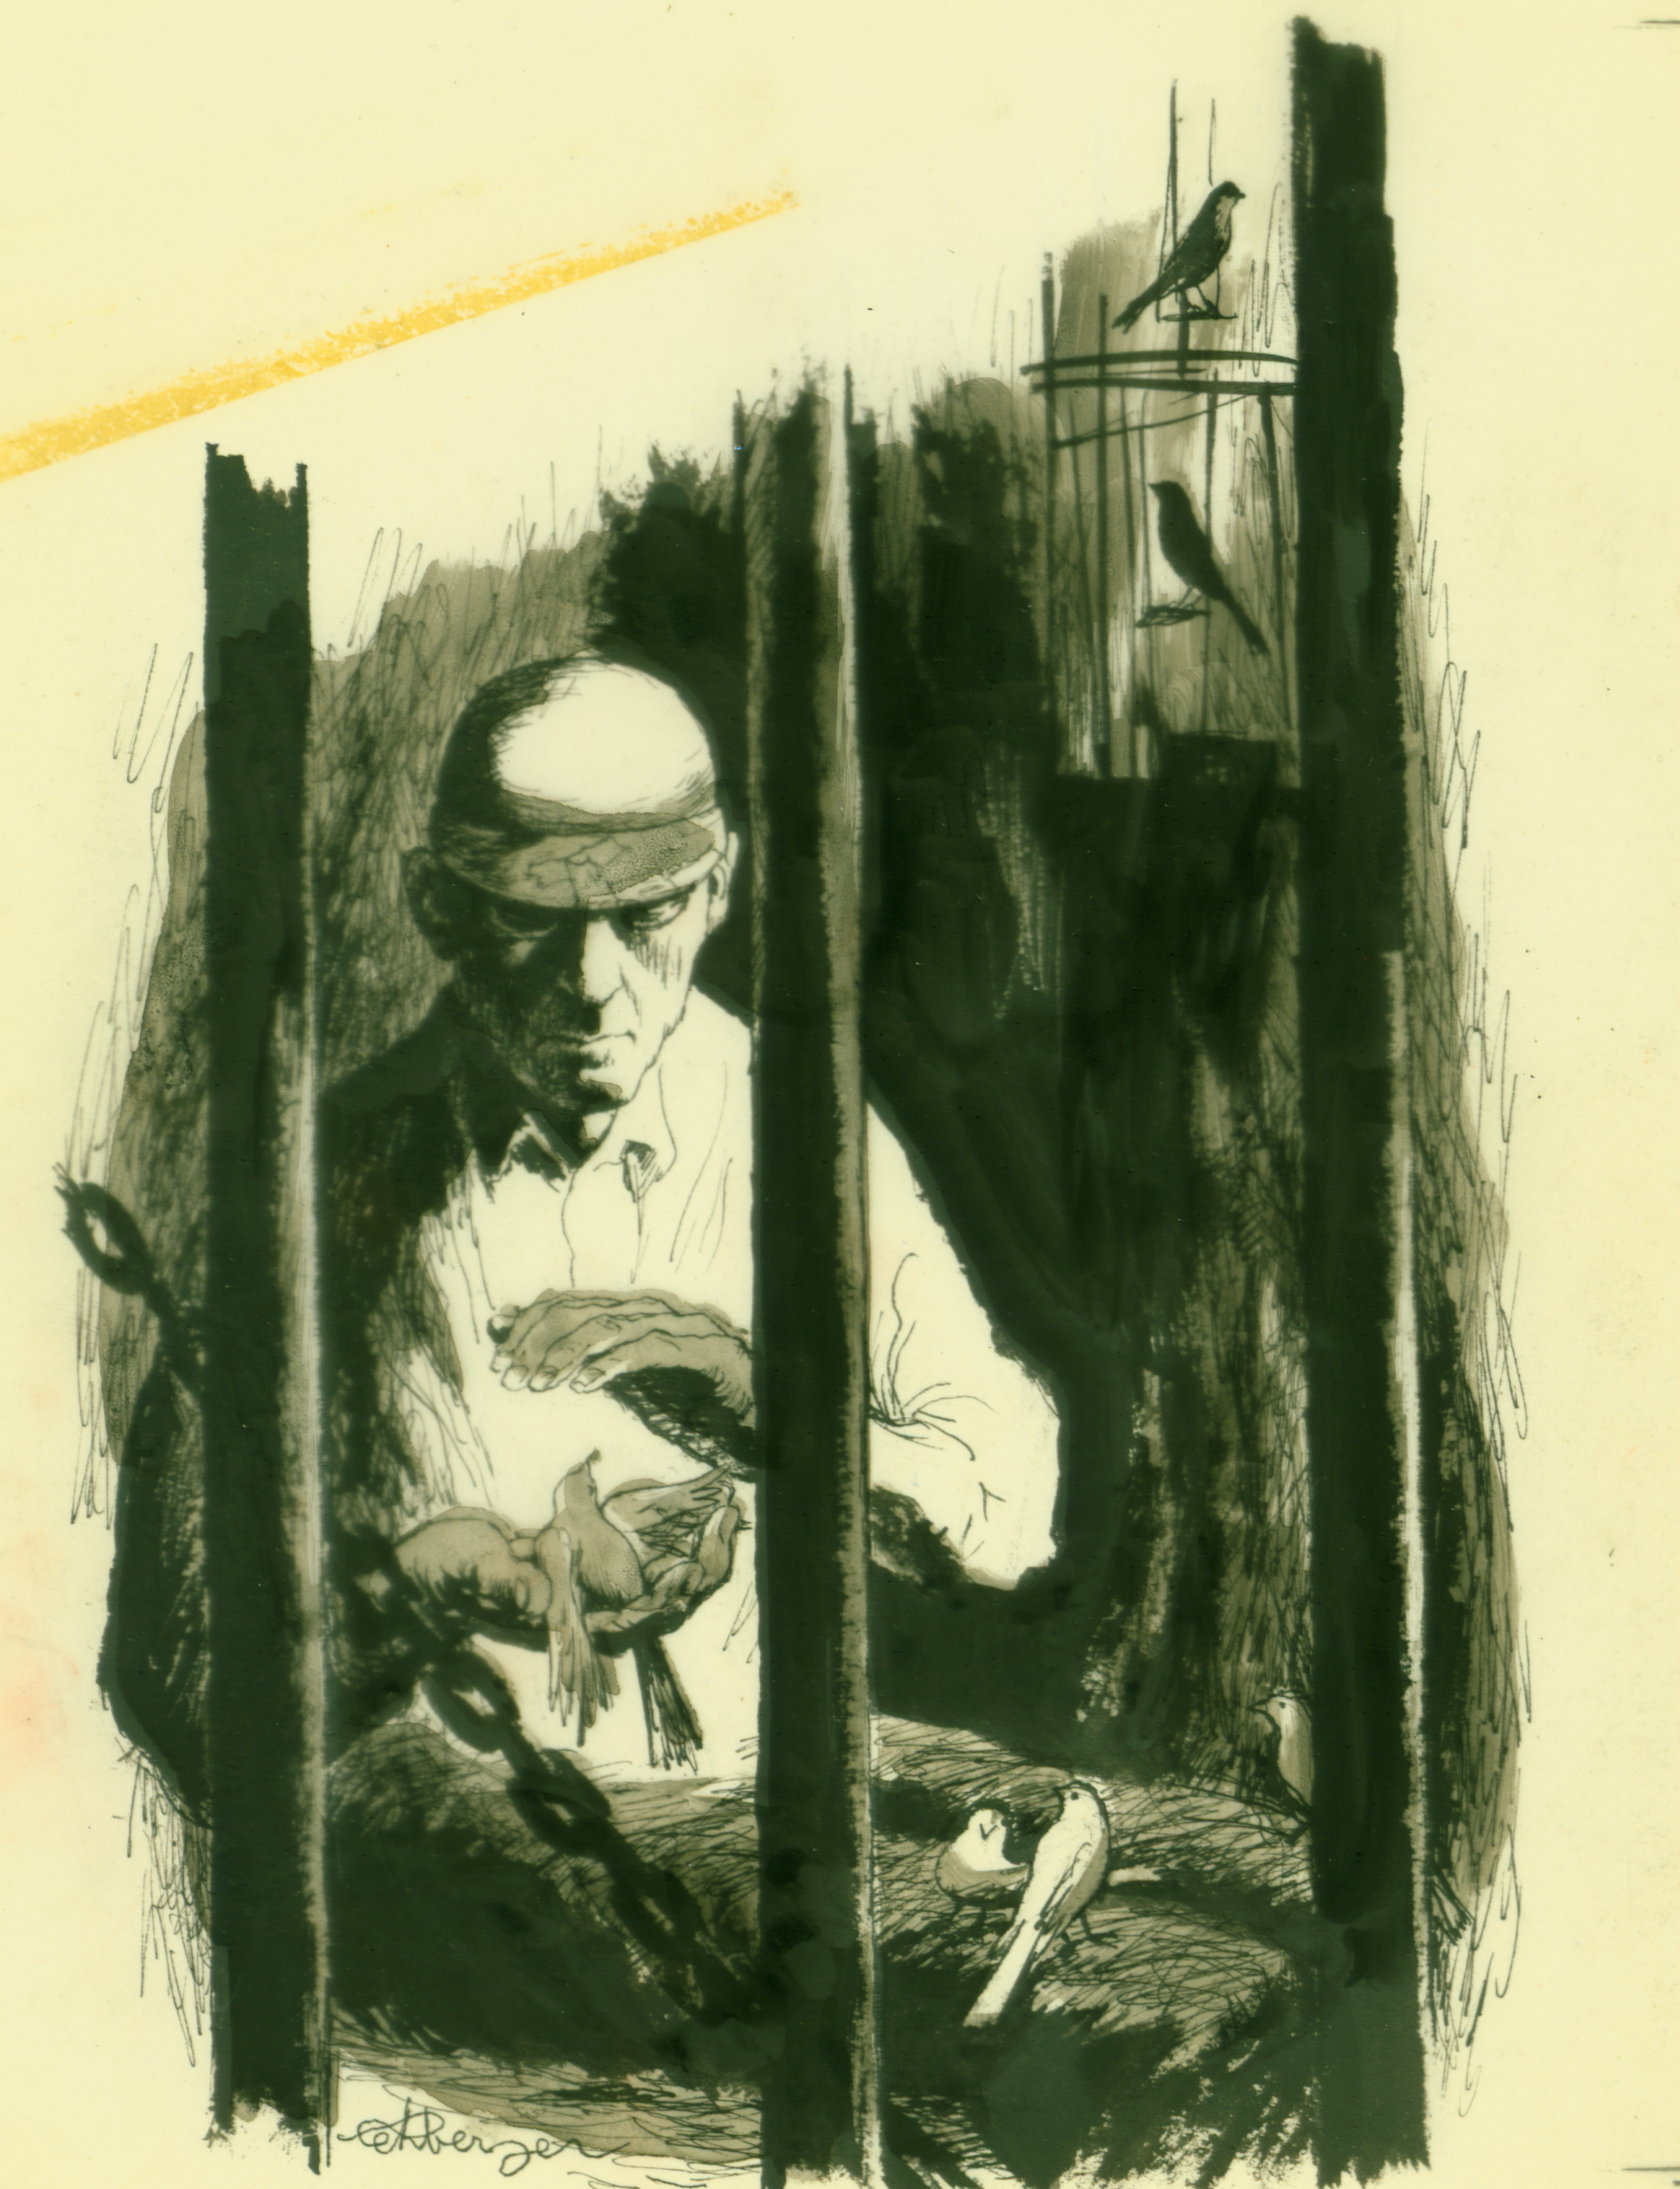 October 1958 - The Agony of the Caged Birdman (Pen & Ink Wash, 8x6)